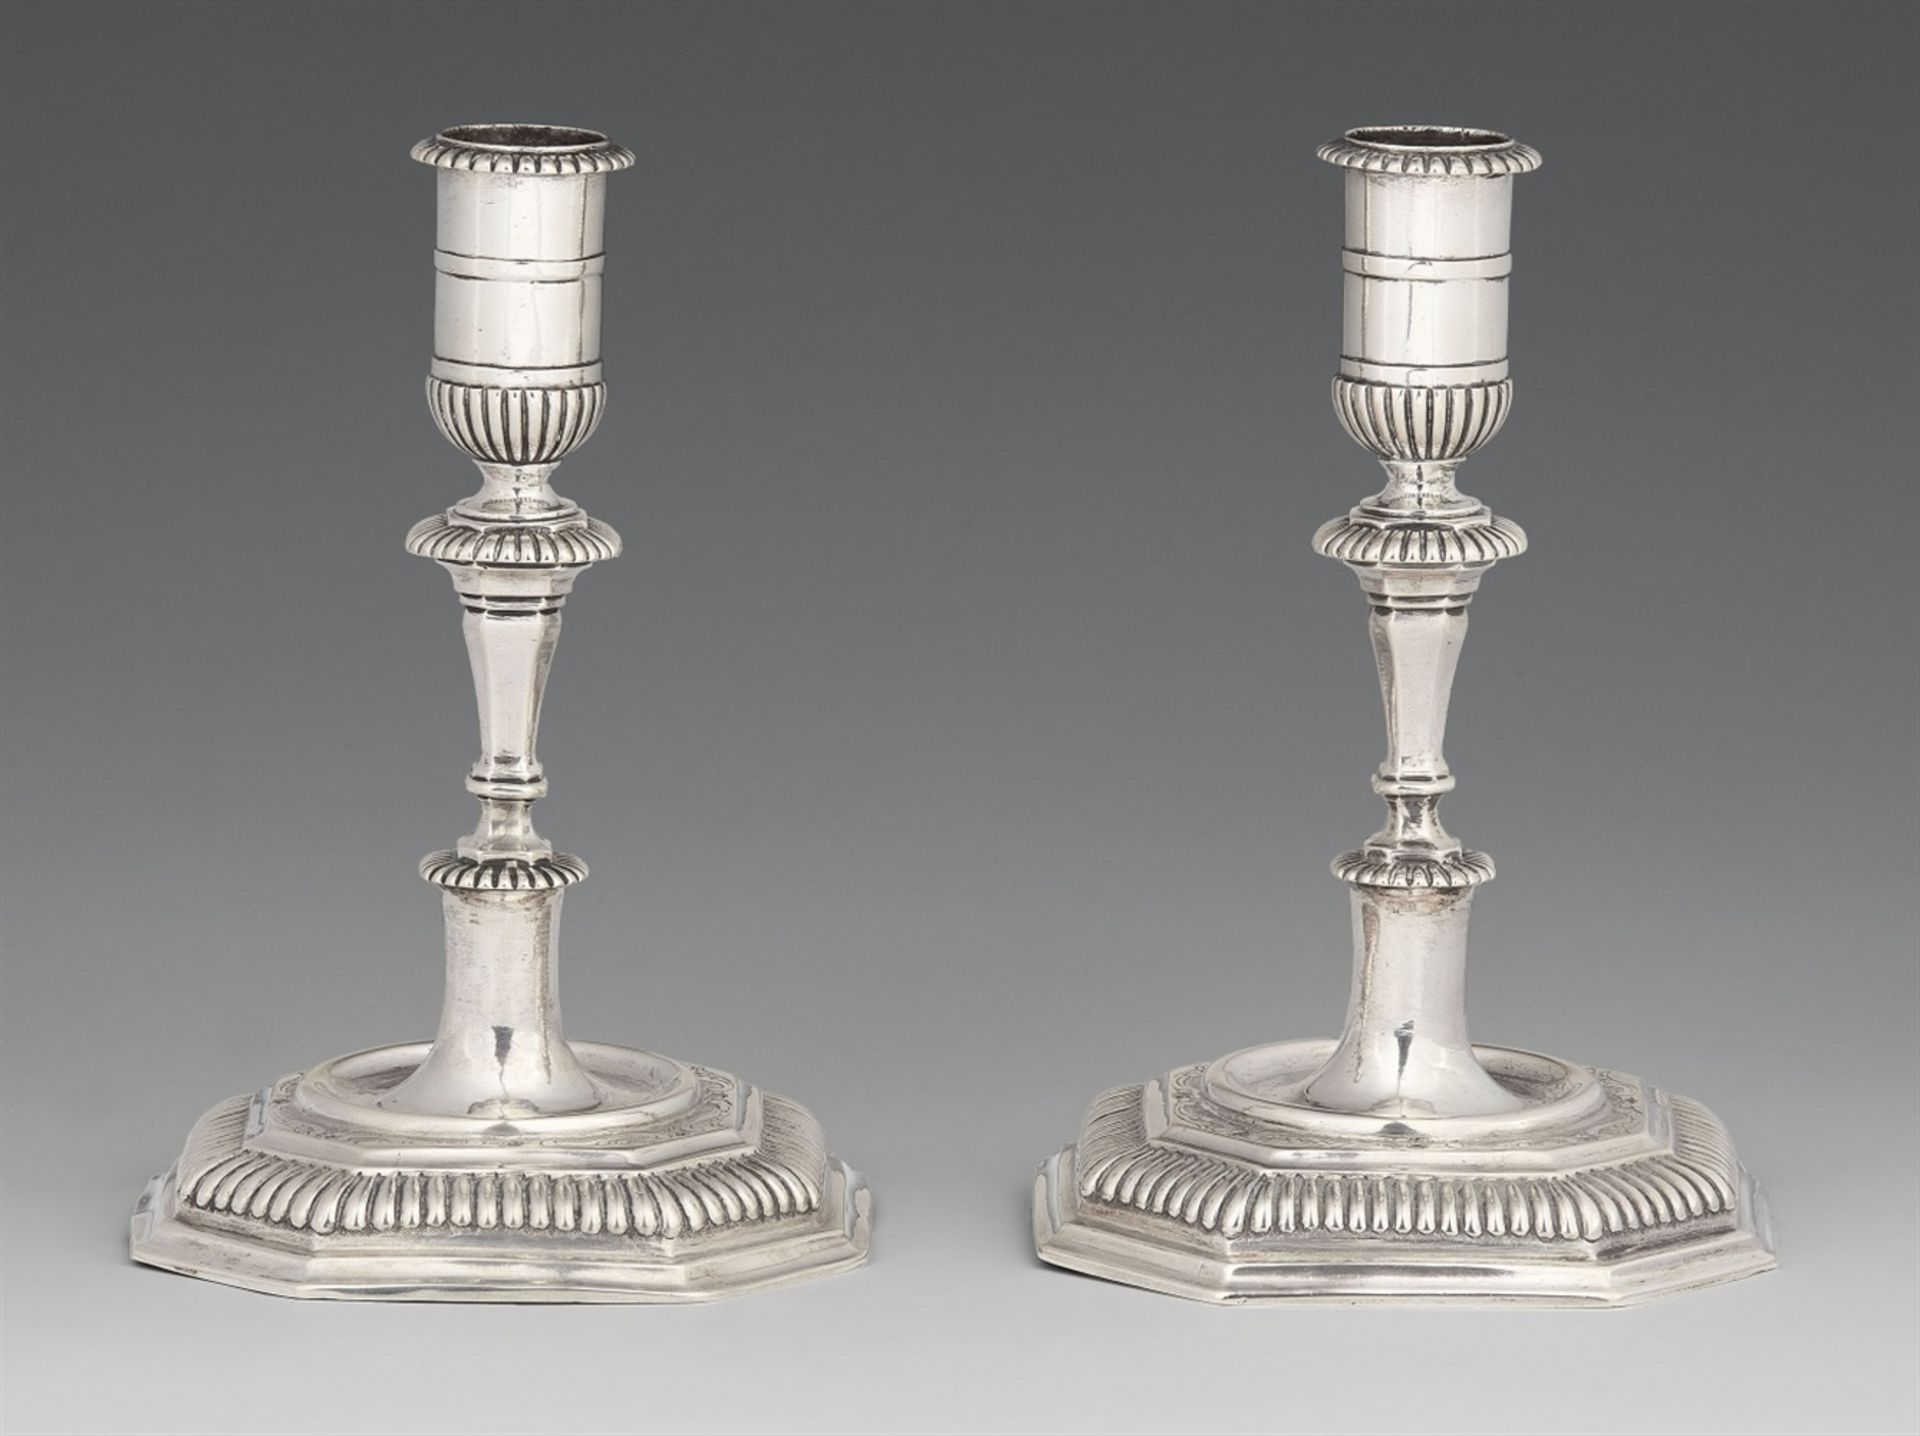 Los 745 - A pair of Halberstadt silver candlesticksSilver. Baluster-form shafts issuing from square